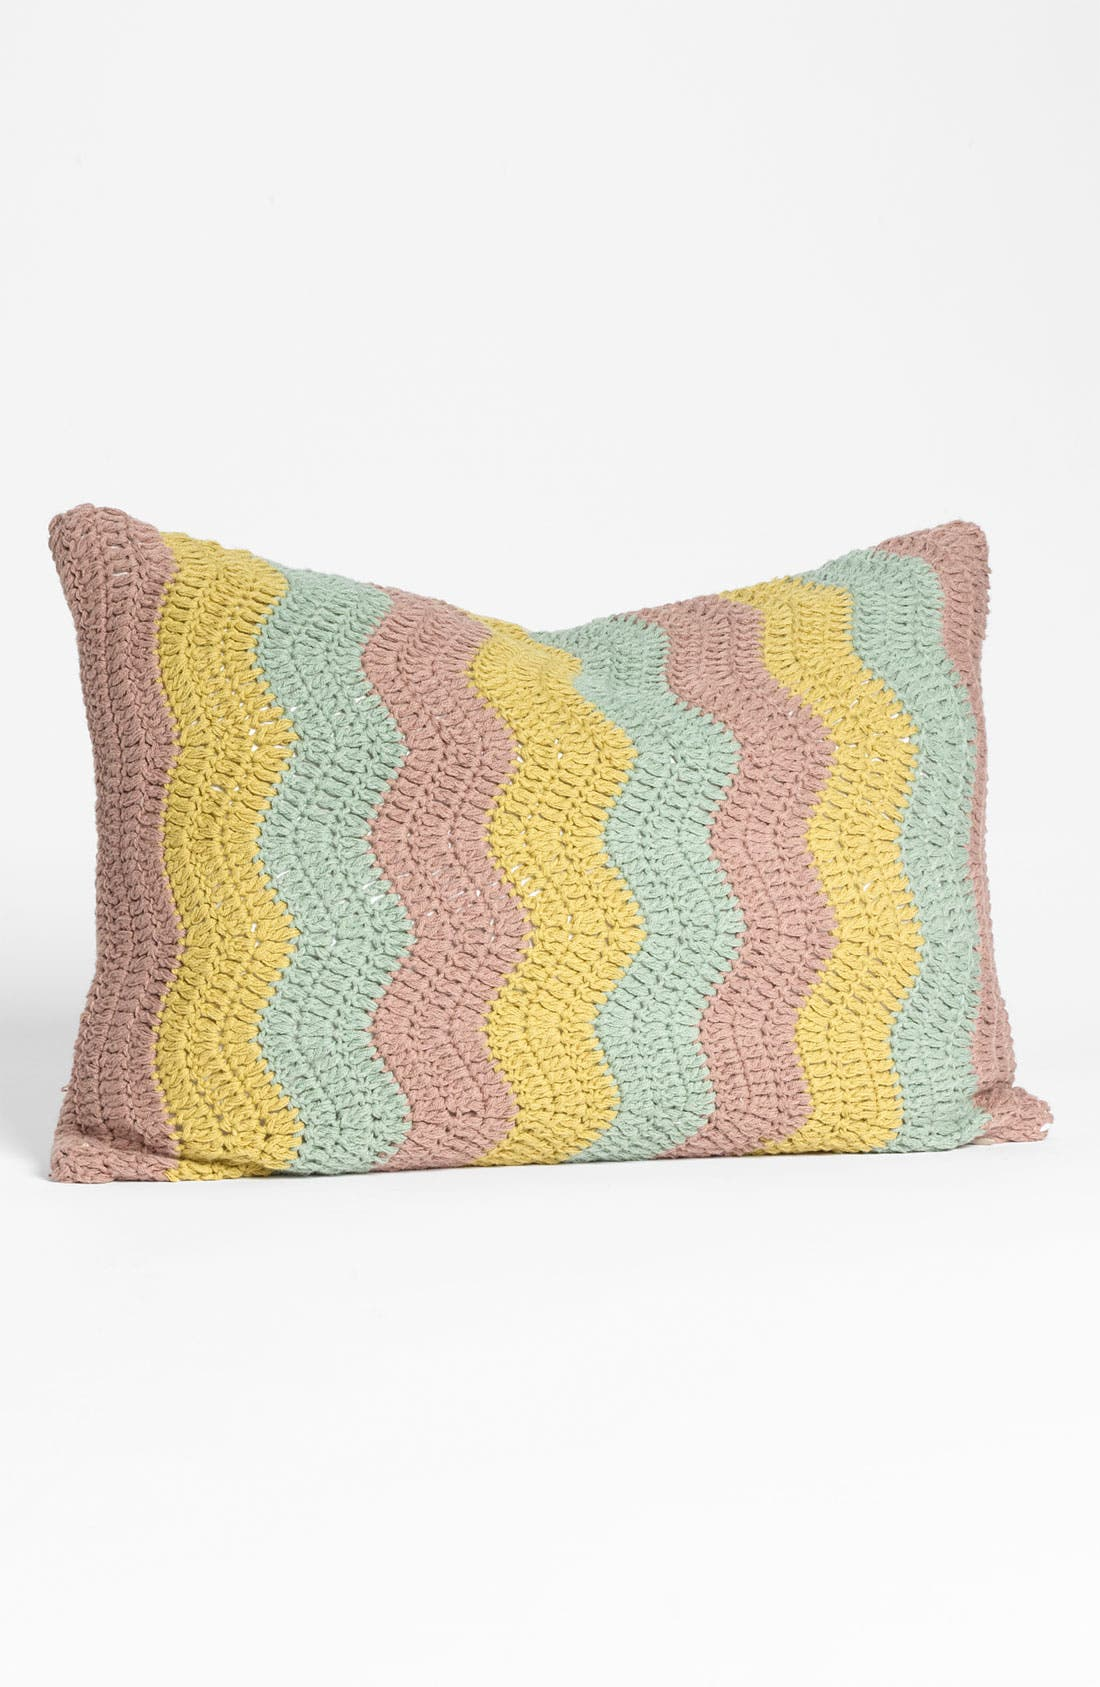 Alternate Image 1 Selected - Nordstrom at Home 'Ric Rac' Crochet Pillow